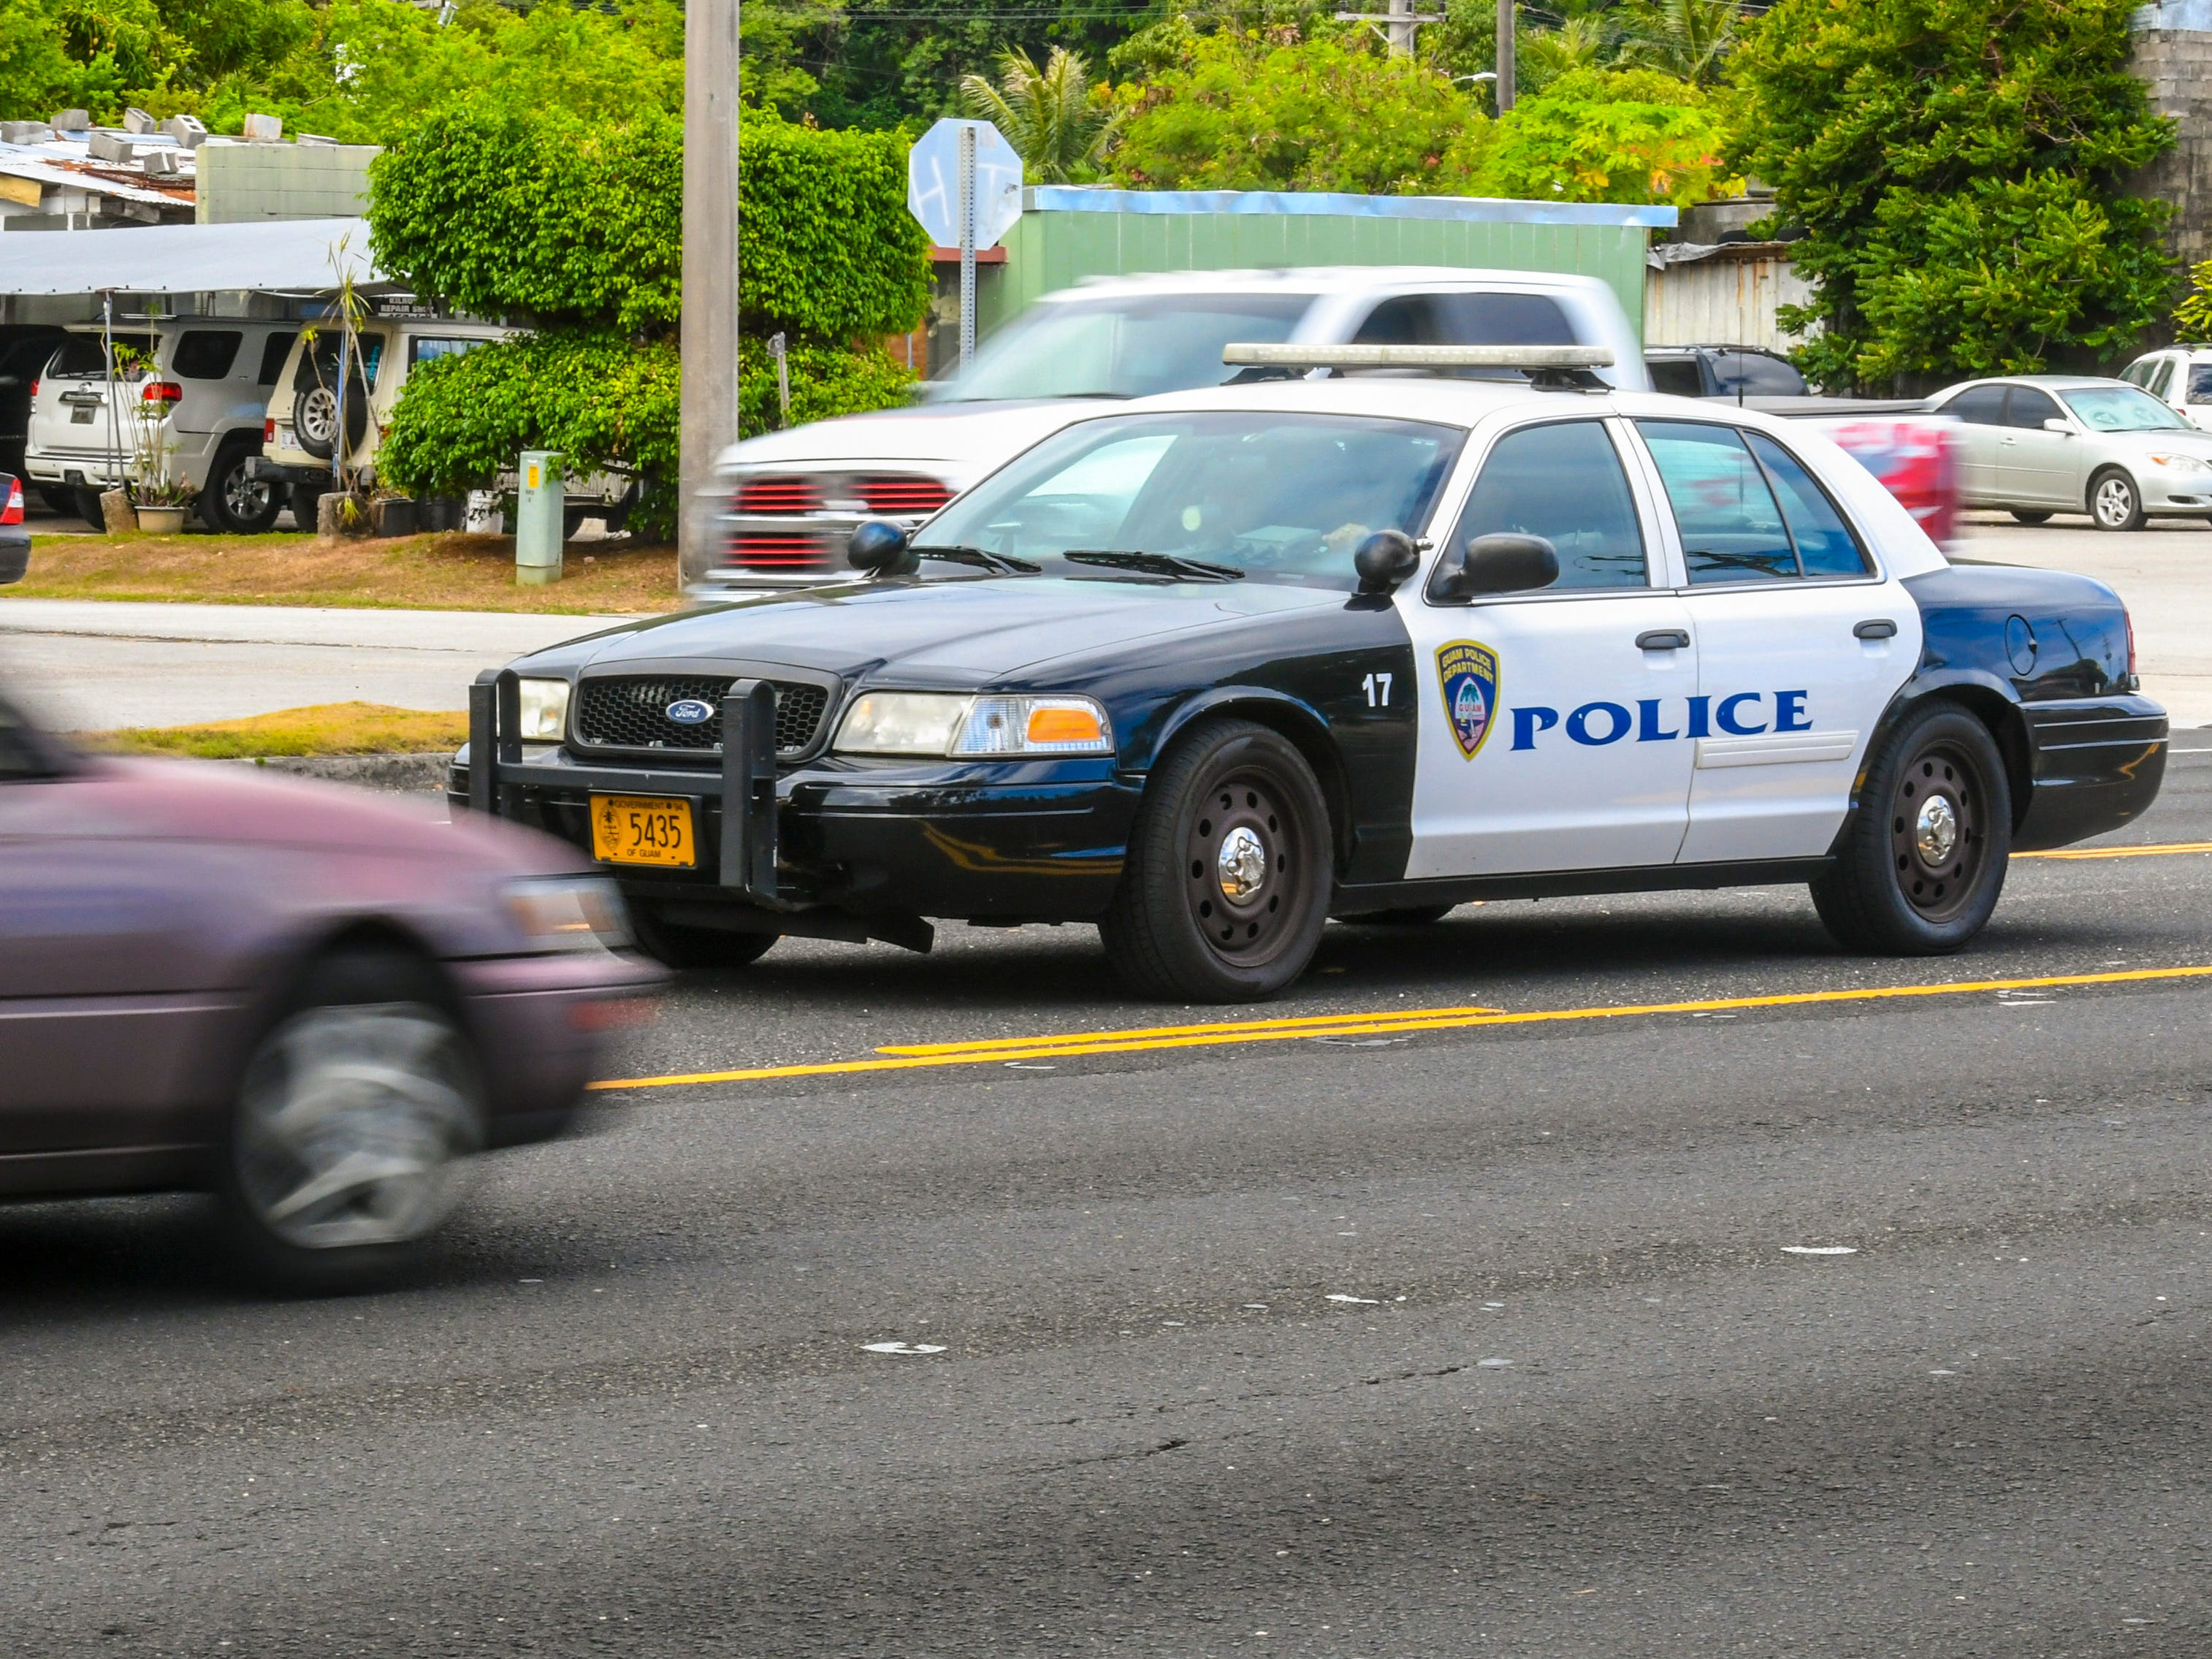 A Guam Police Department's Highway Patrol Division vehicle returns after demonstrating the capabilities of a unit equipped with a roving radar device while in Anigua on Tuesday, May 14, 2019.